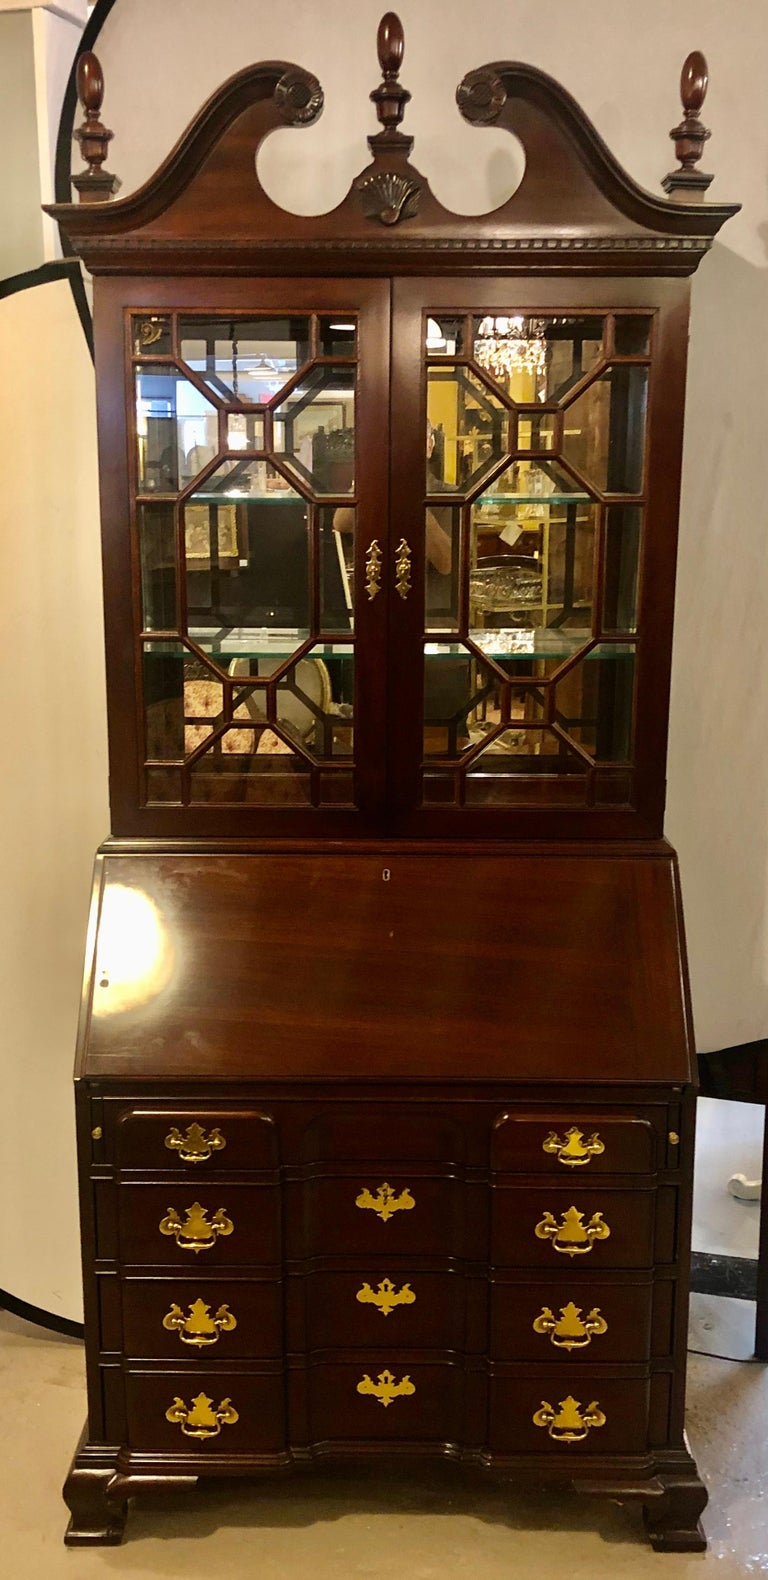 Pennsylvania House secretary desk / bookcase. This fine mahogany block front two-piece Chippendale style secretary bookcase cabinet has a lighted all mirrored with polished edges interior. The drop down slant front having a writing surface with